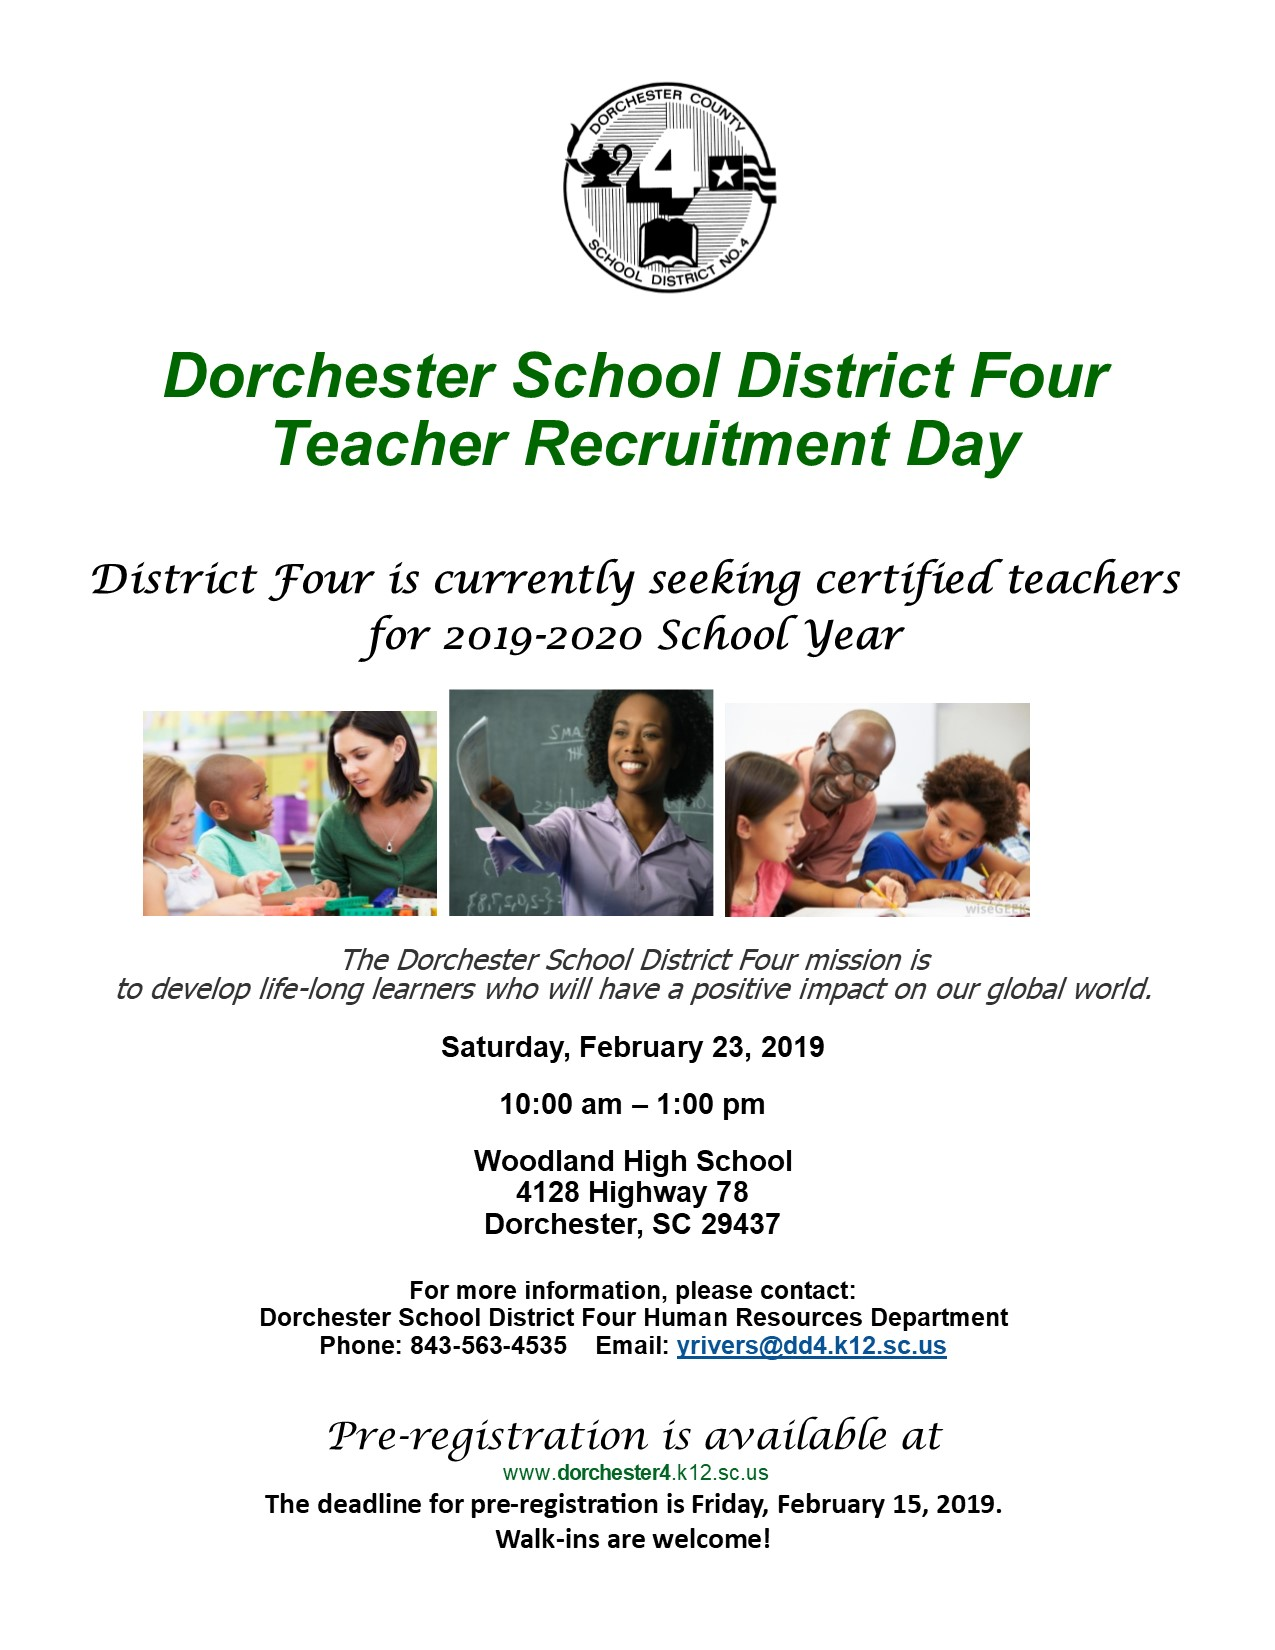 Human Resources Dorchester County School District 4